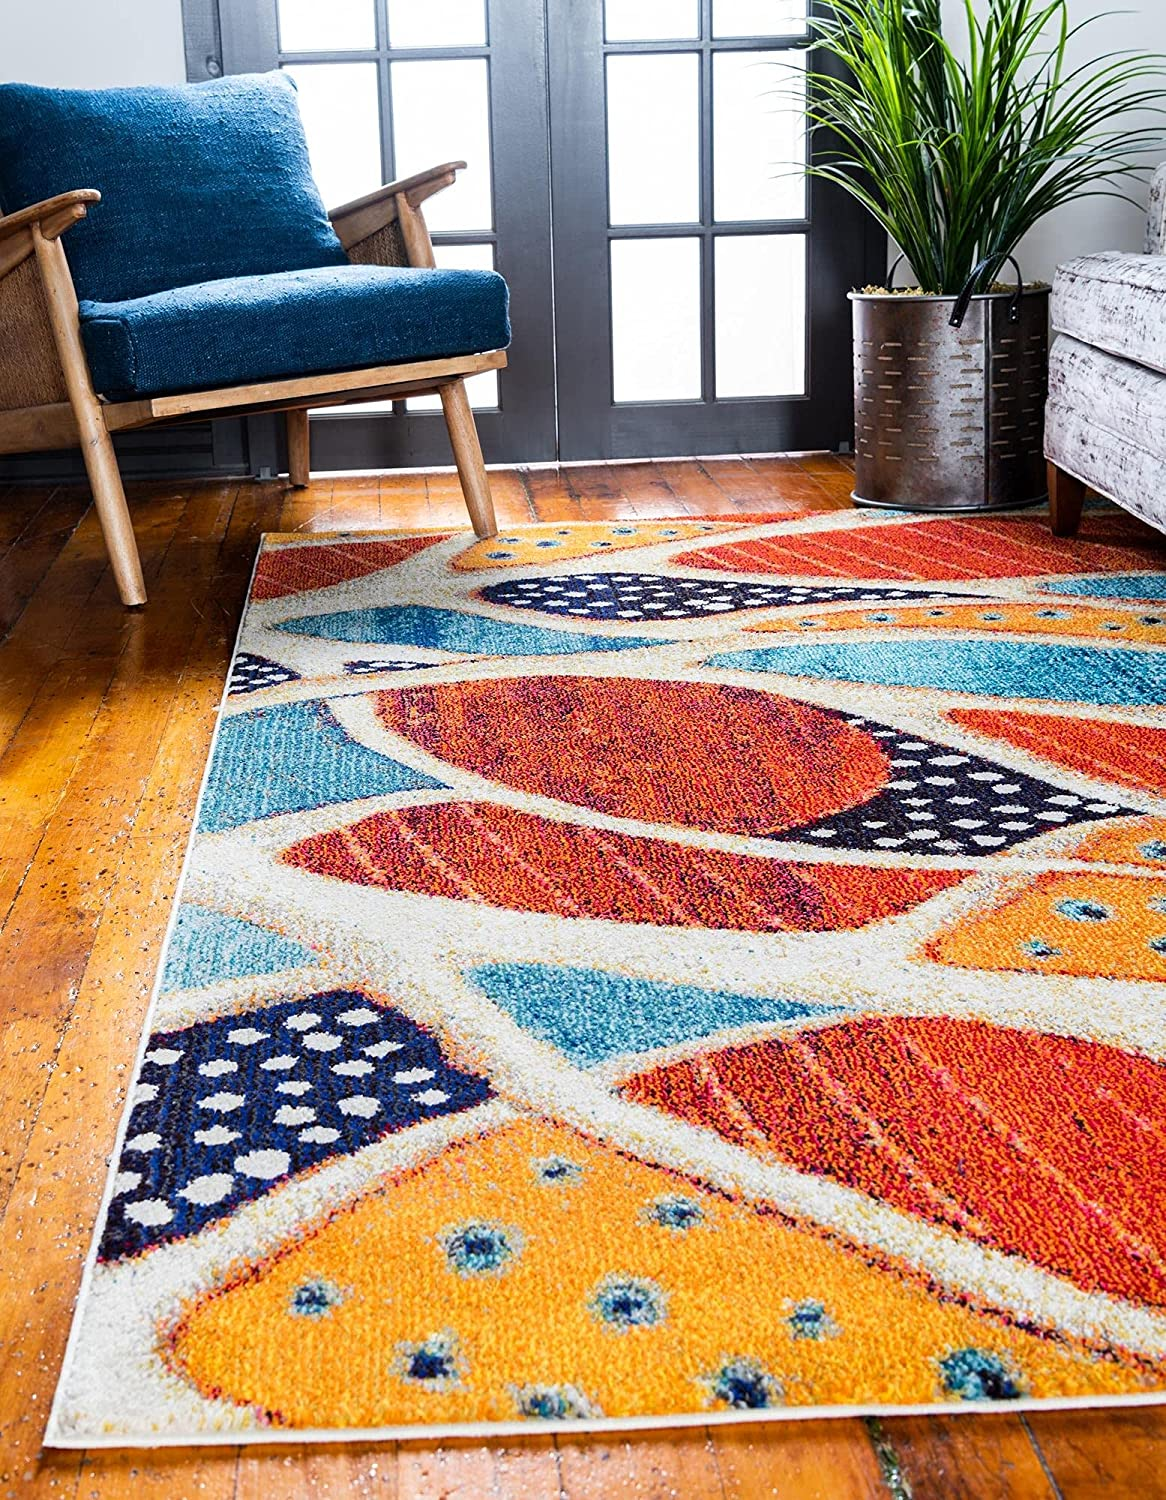 Unique Direct store Loom Positano Collection Coastal Abstract Max 58% OFF Modern Oceanic